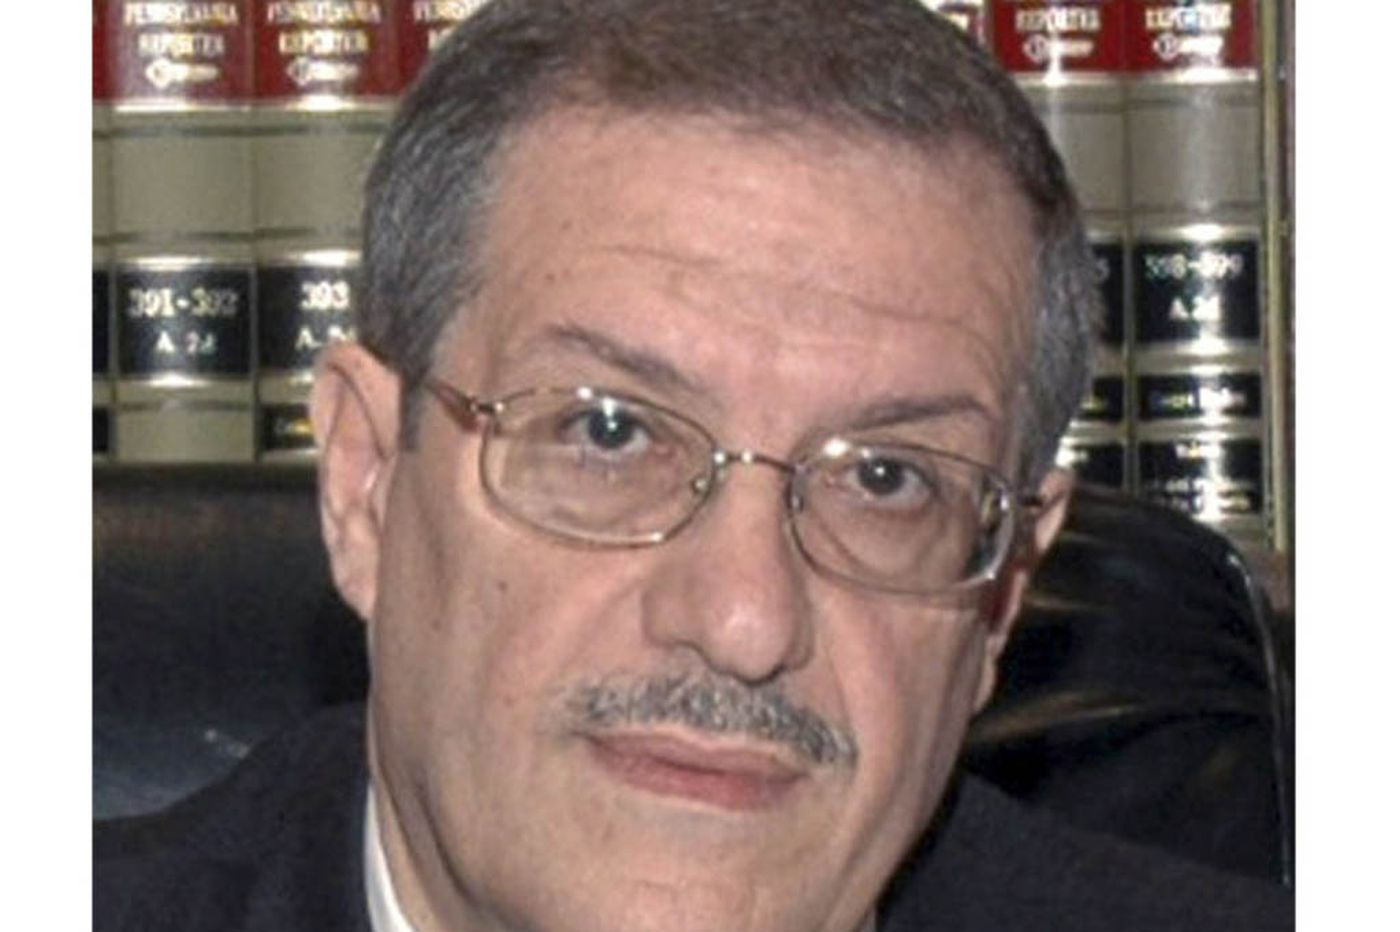 Panepinto, judge who imposed huge sanction, had low profile before